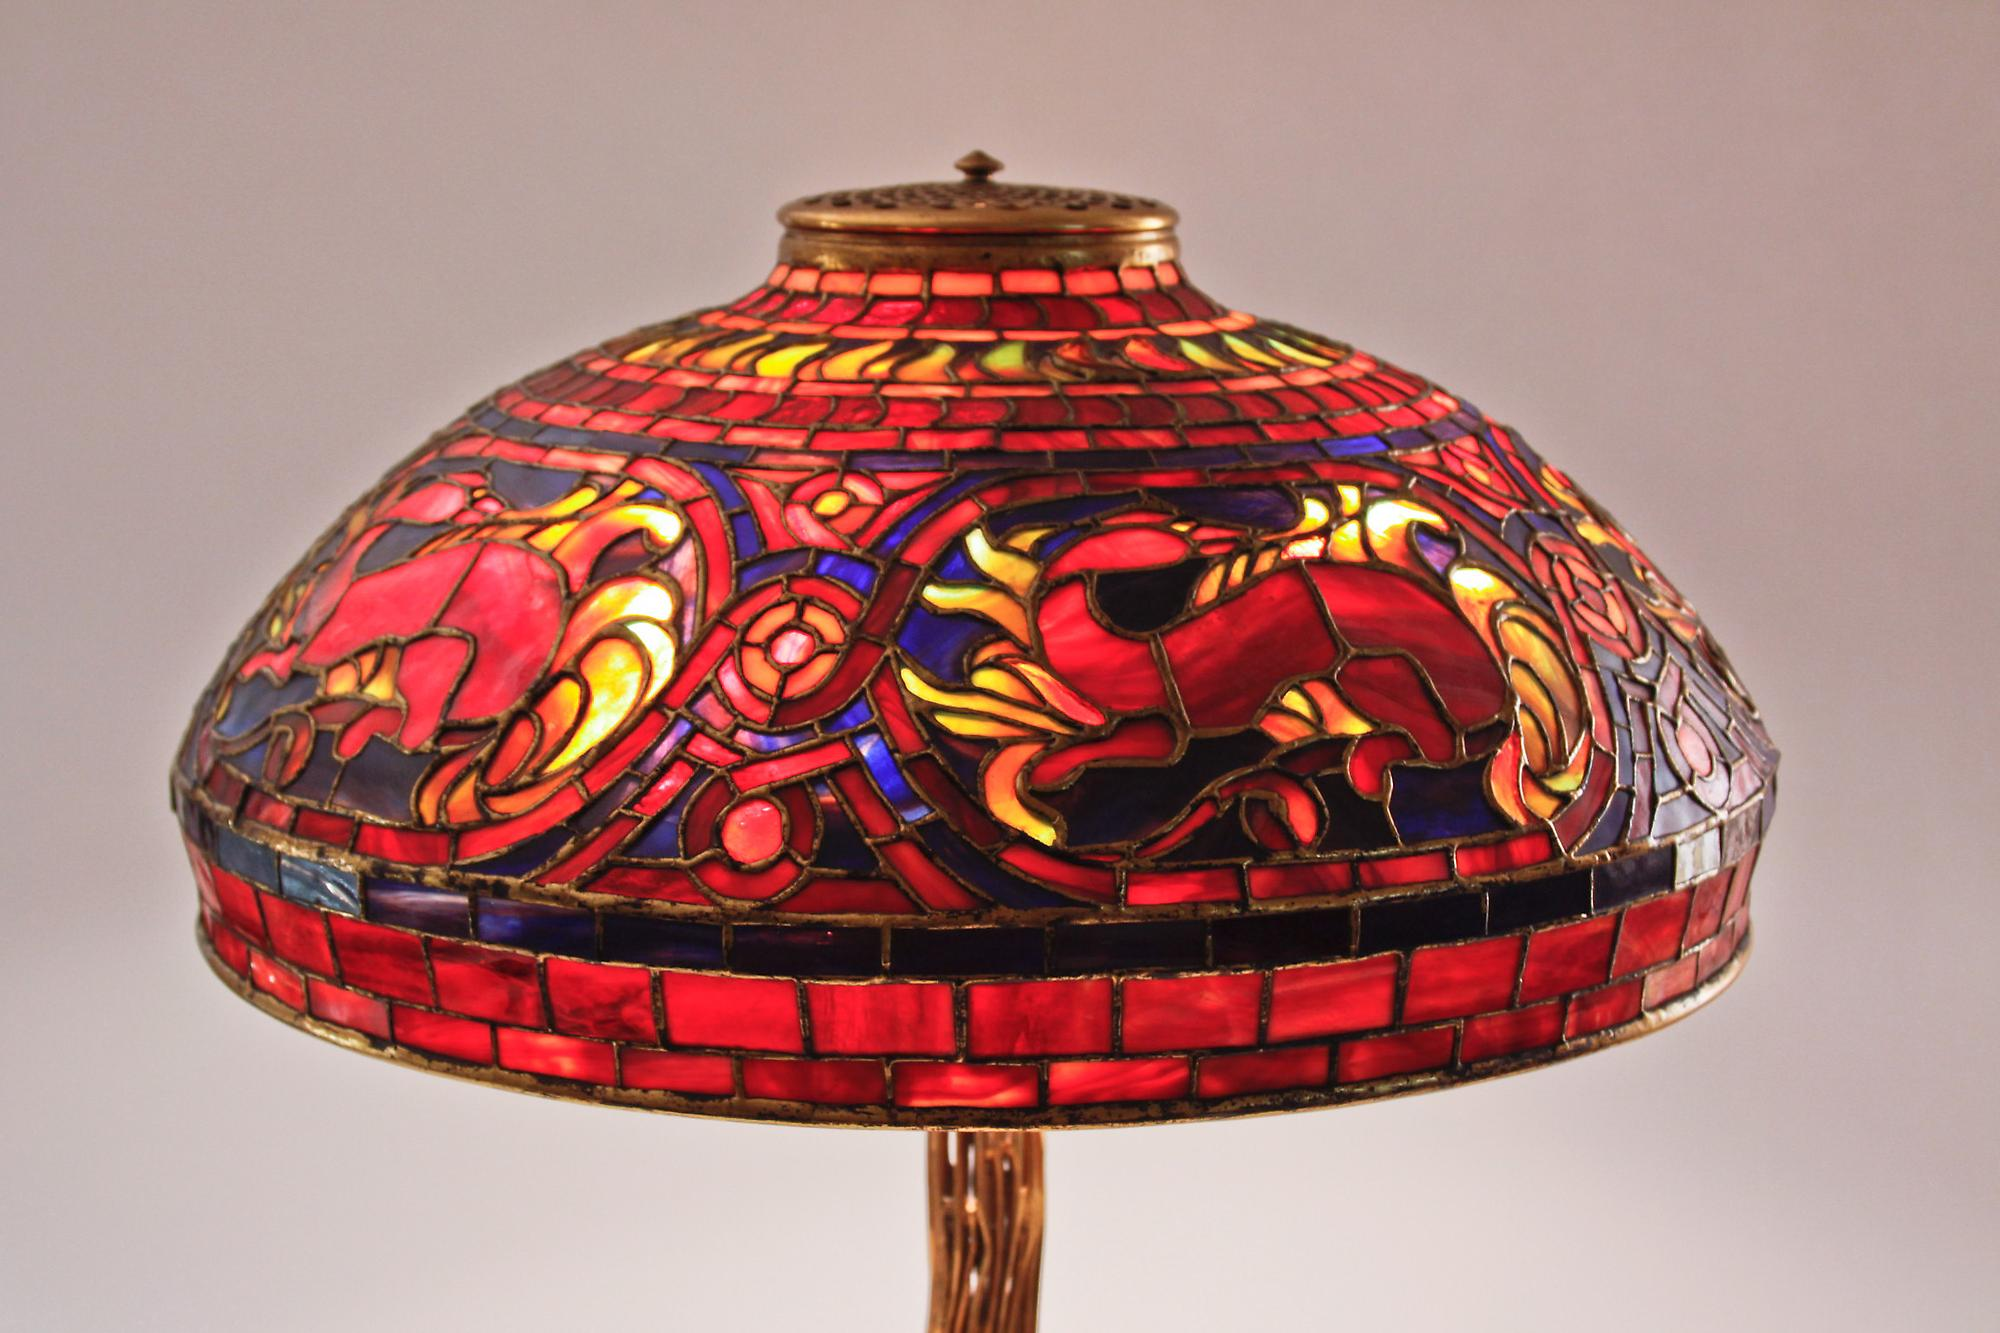 Tiffany StudiosSalamander Table Lamp 2